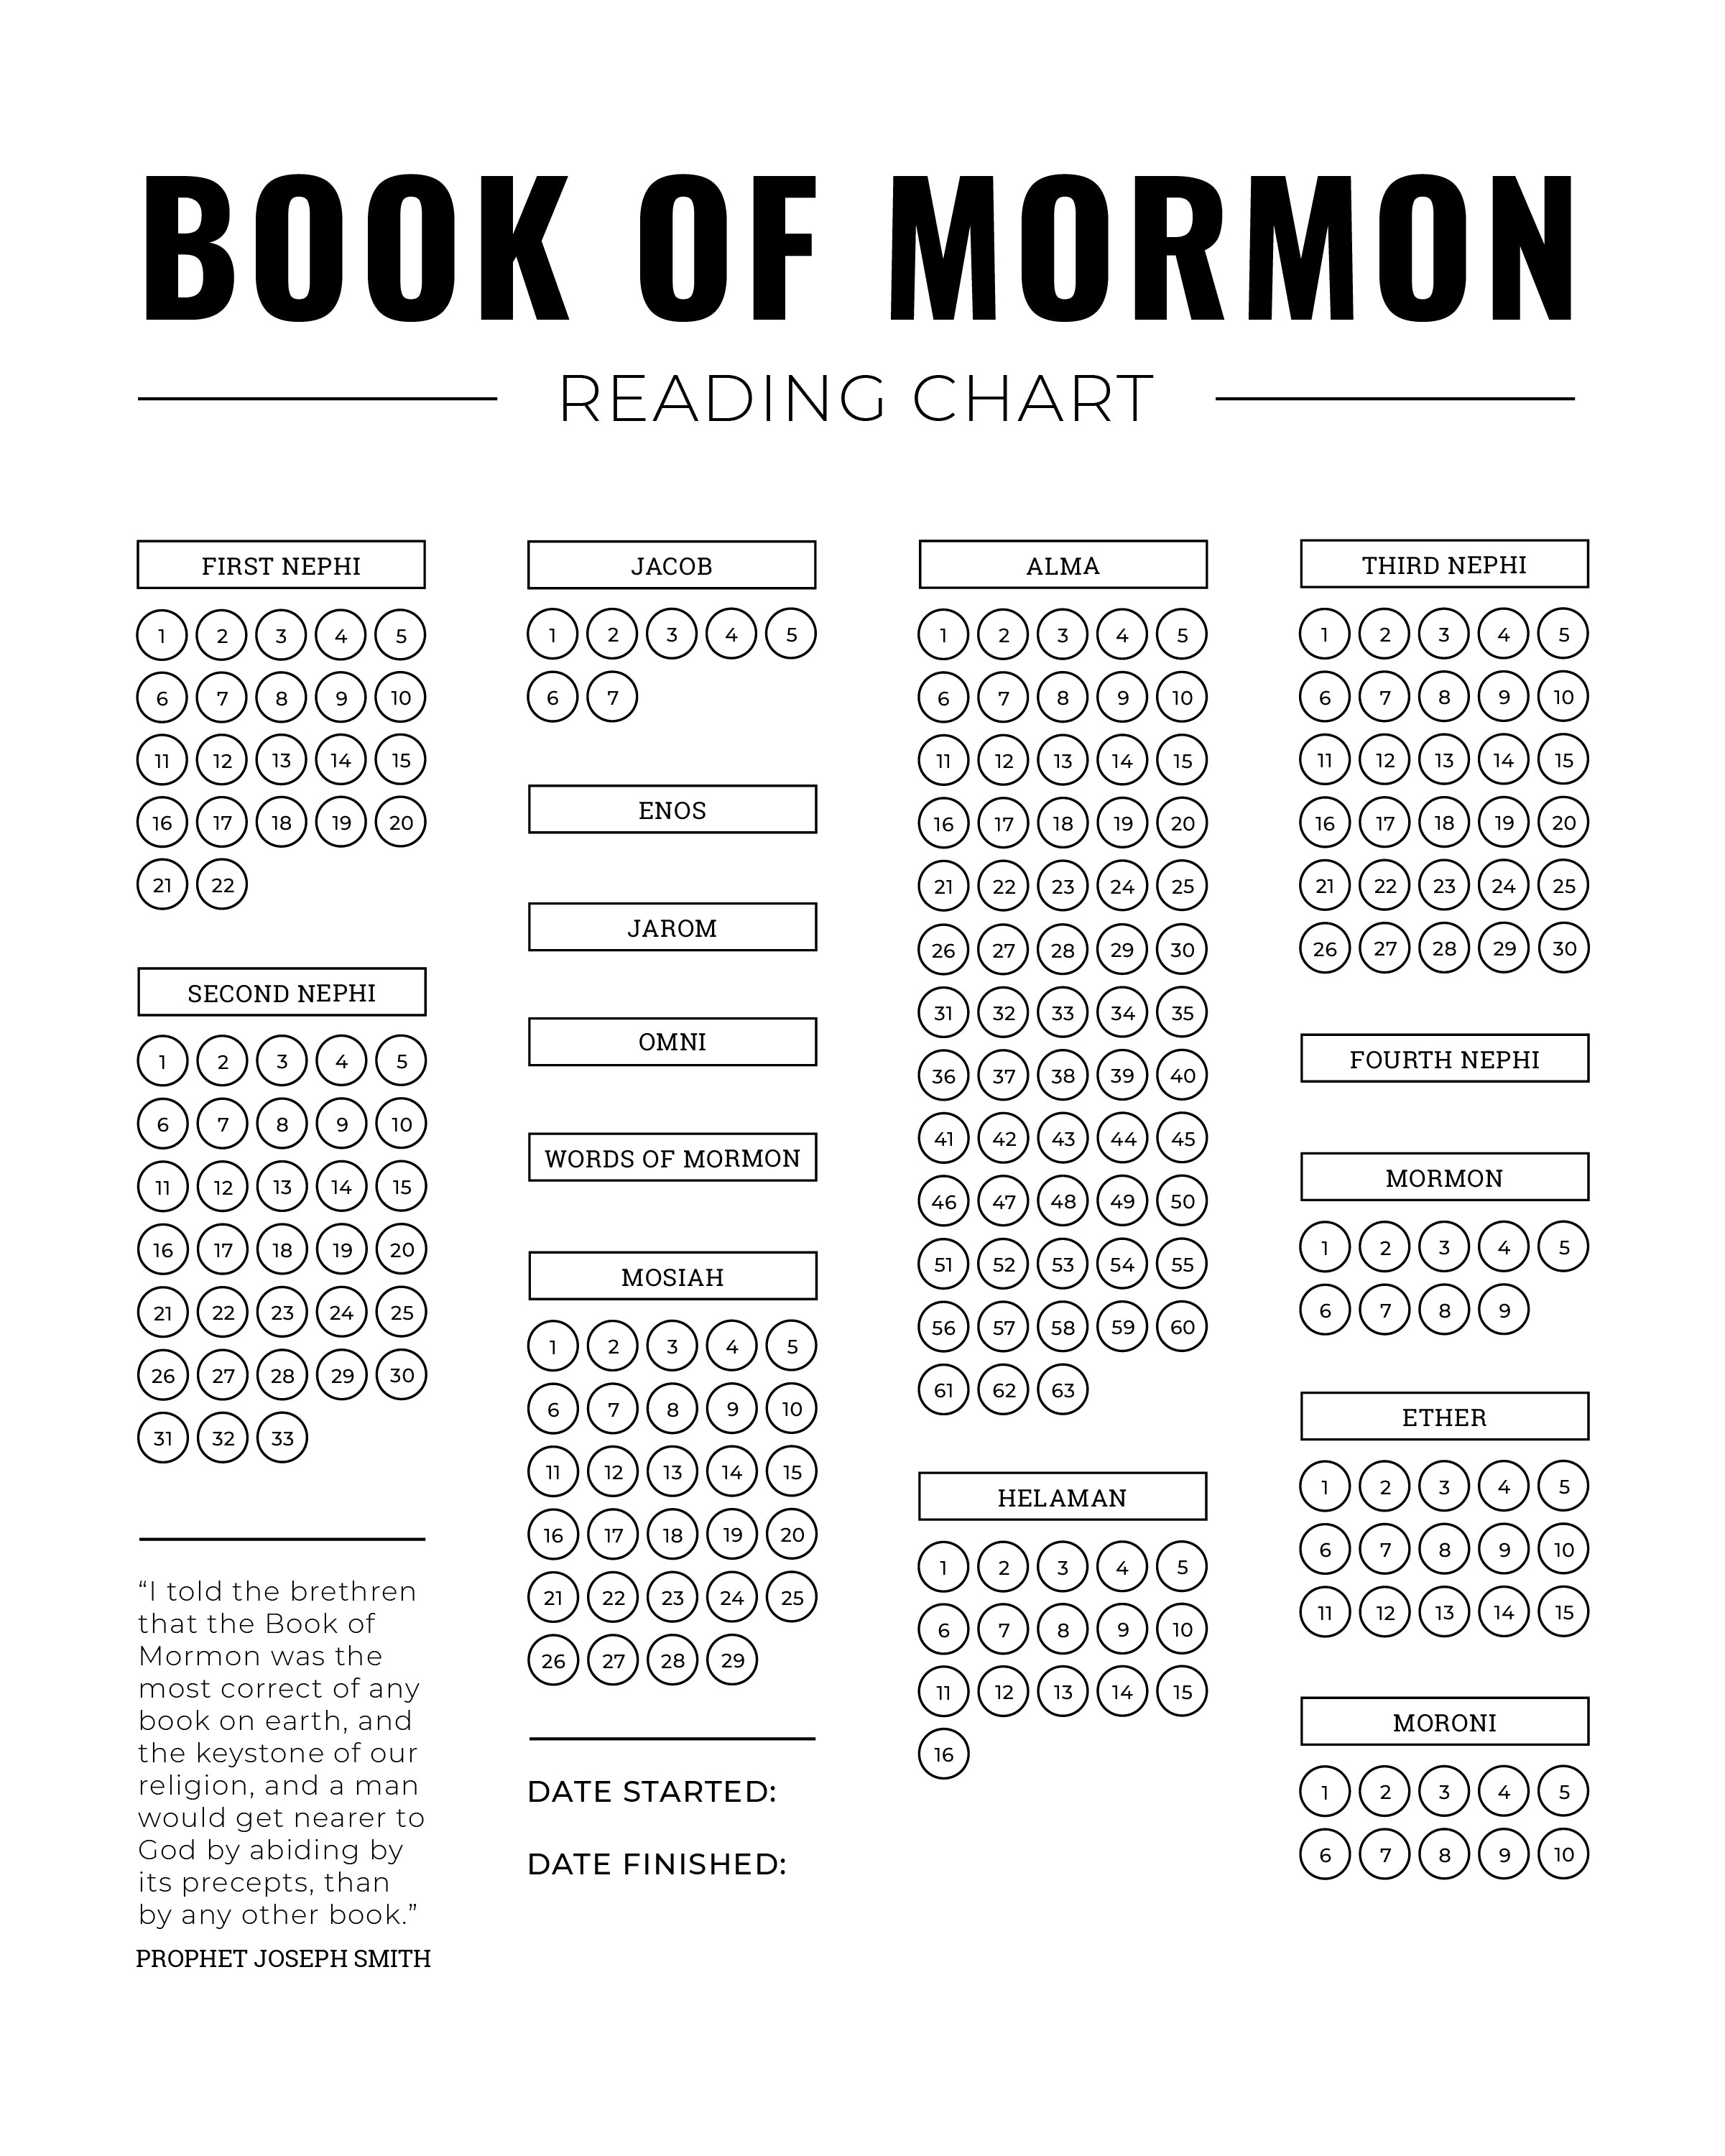 BOOK OF MORMON READING CHART